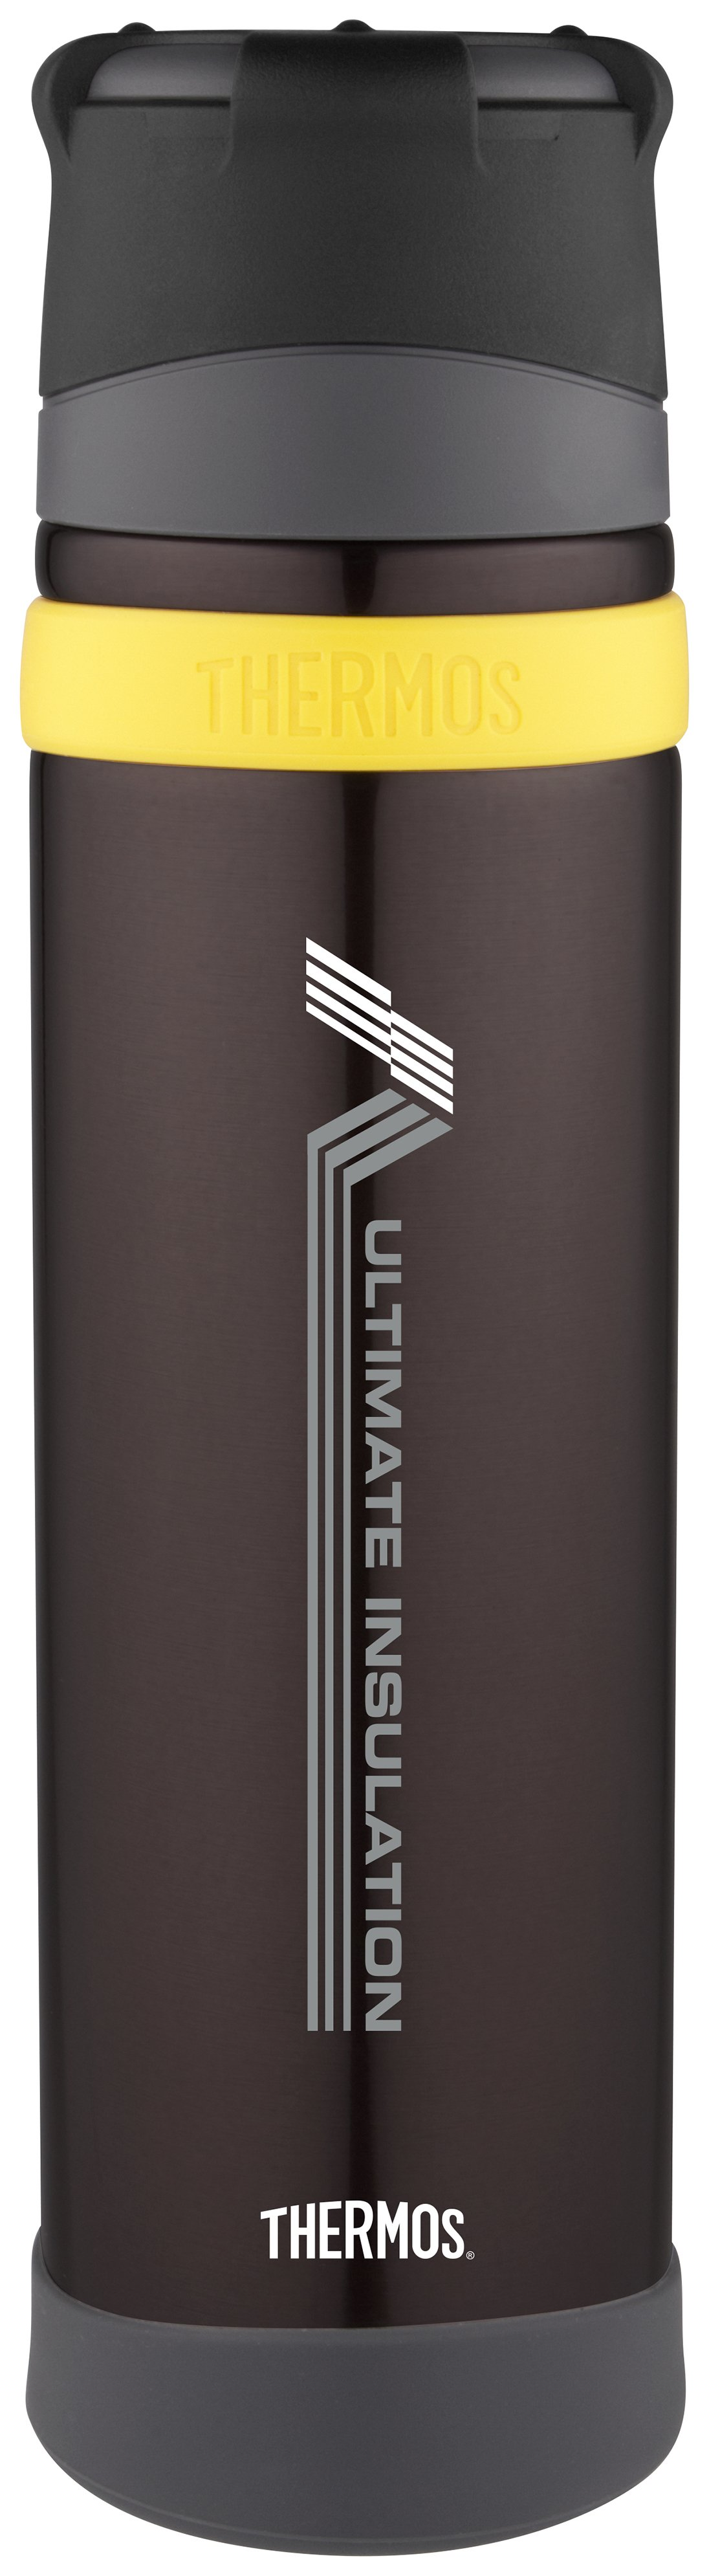 Image of Thermos Ultimate Flask - 900ml.